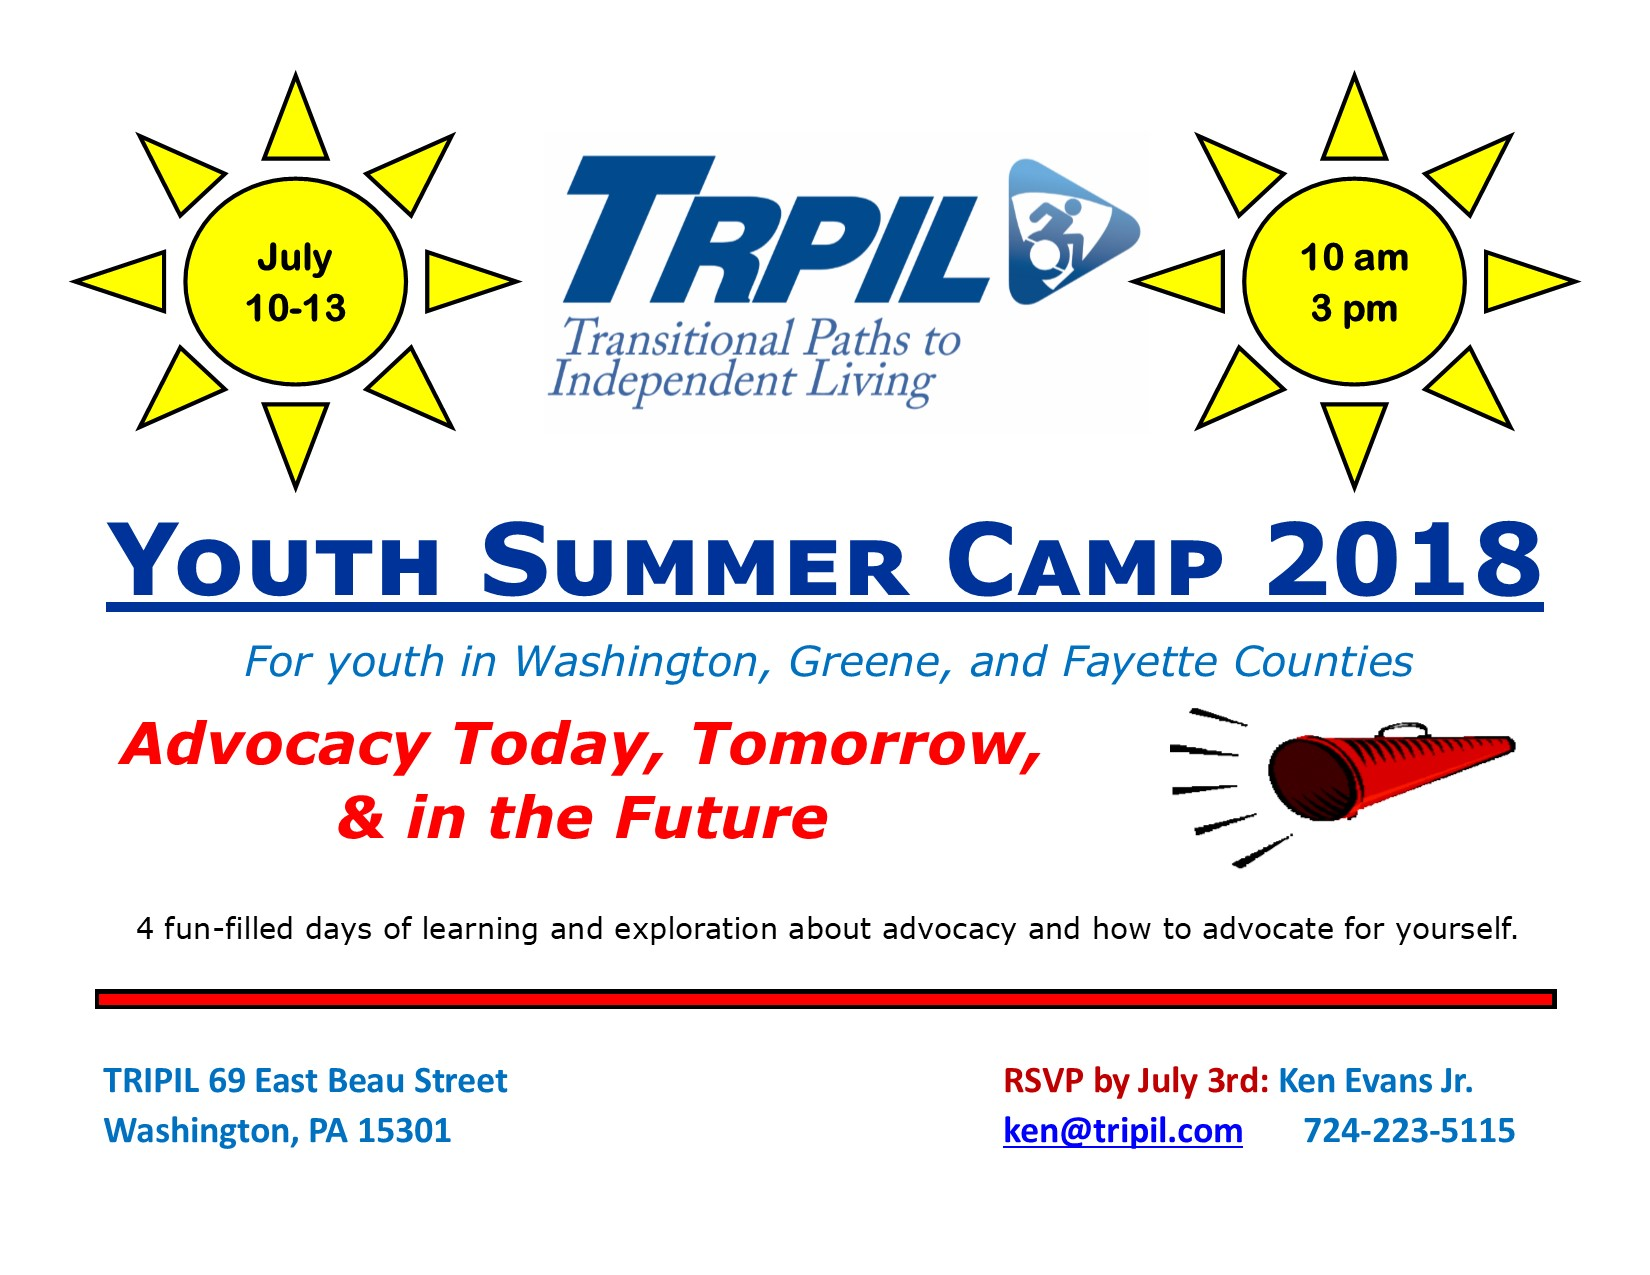 TRIPIL Youth Summer Camp 2018 Flier